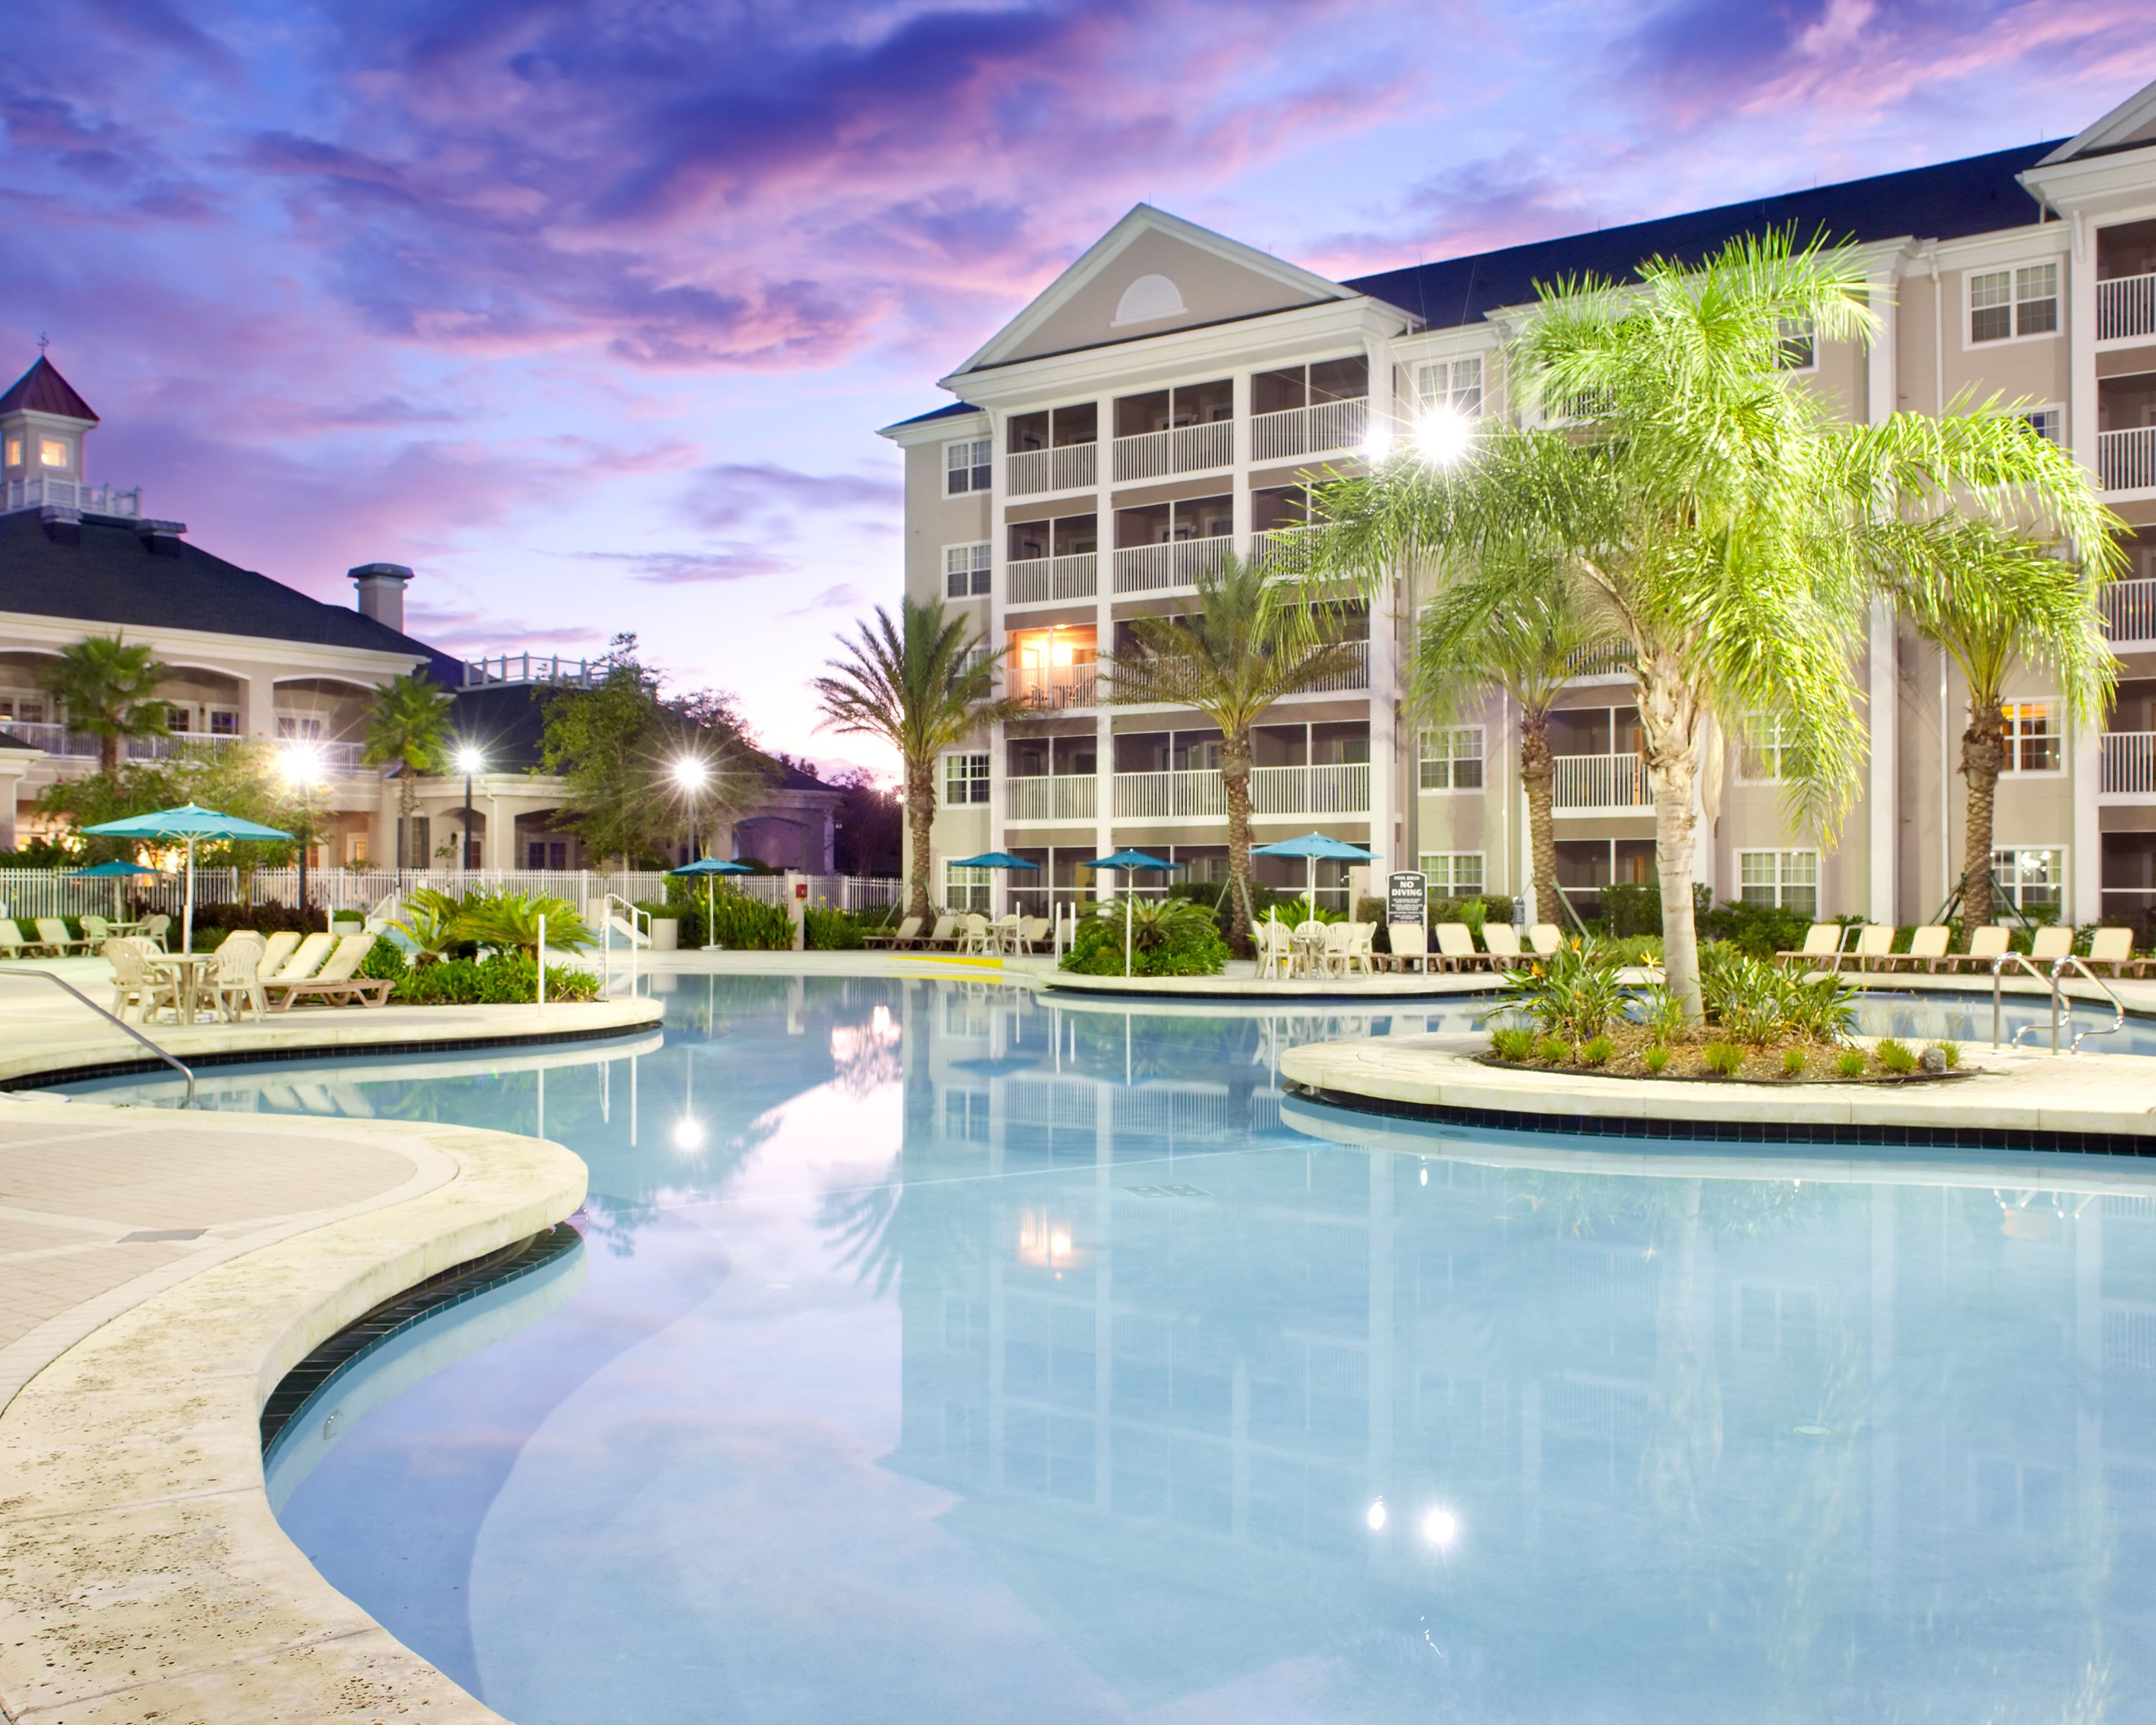 Book A Room At The Bluegreen Vacations Grande Villas World Golf Village An Ascend Hotel In St This Airport Offers Free Wi Fi